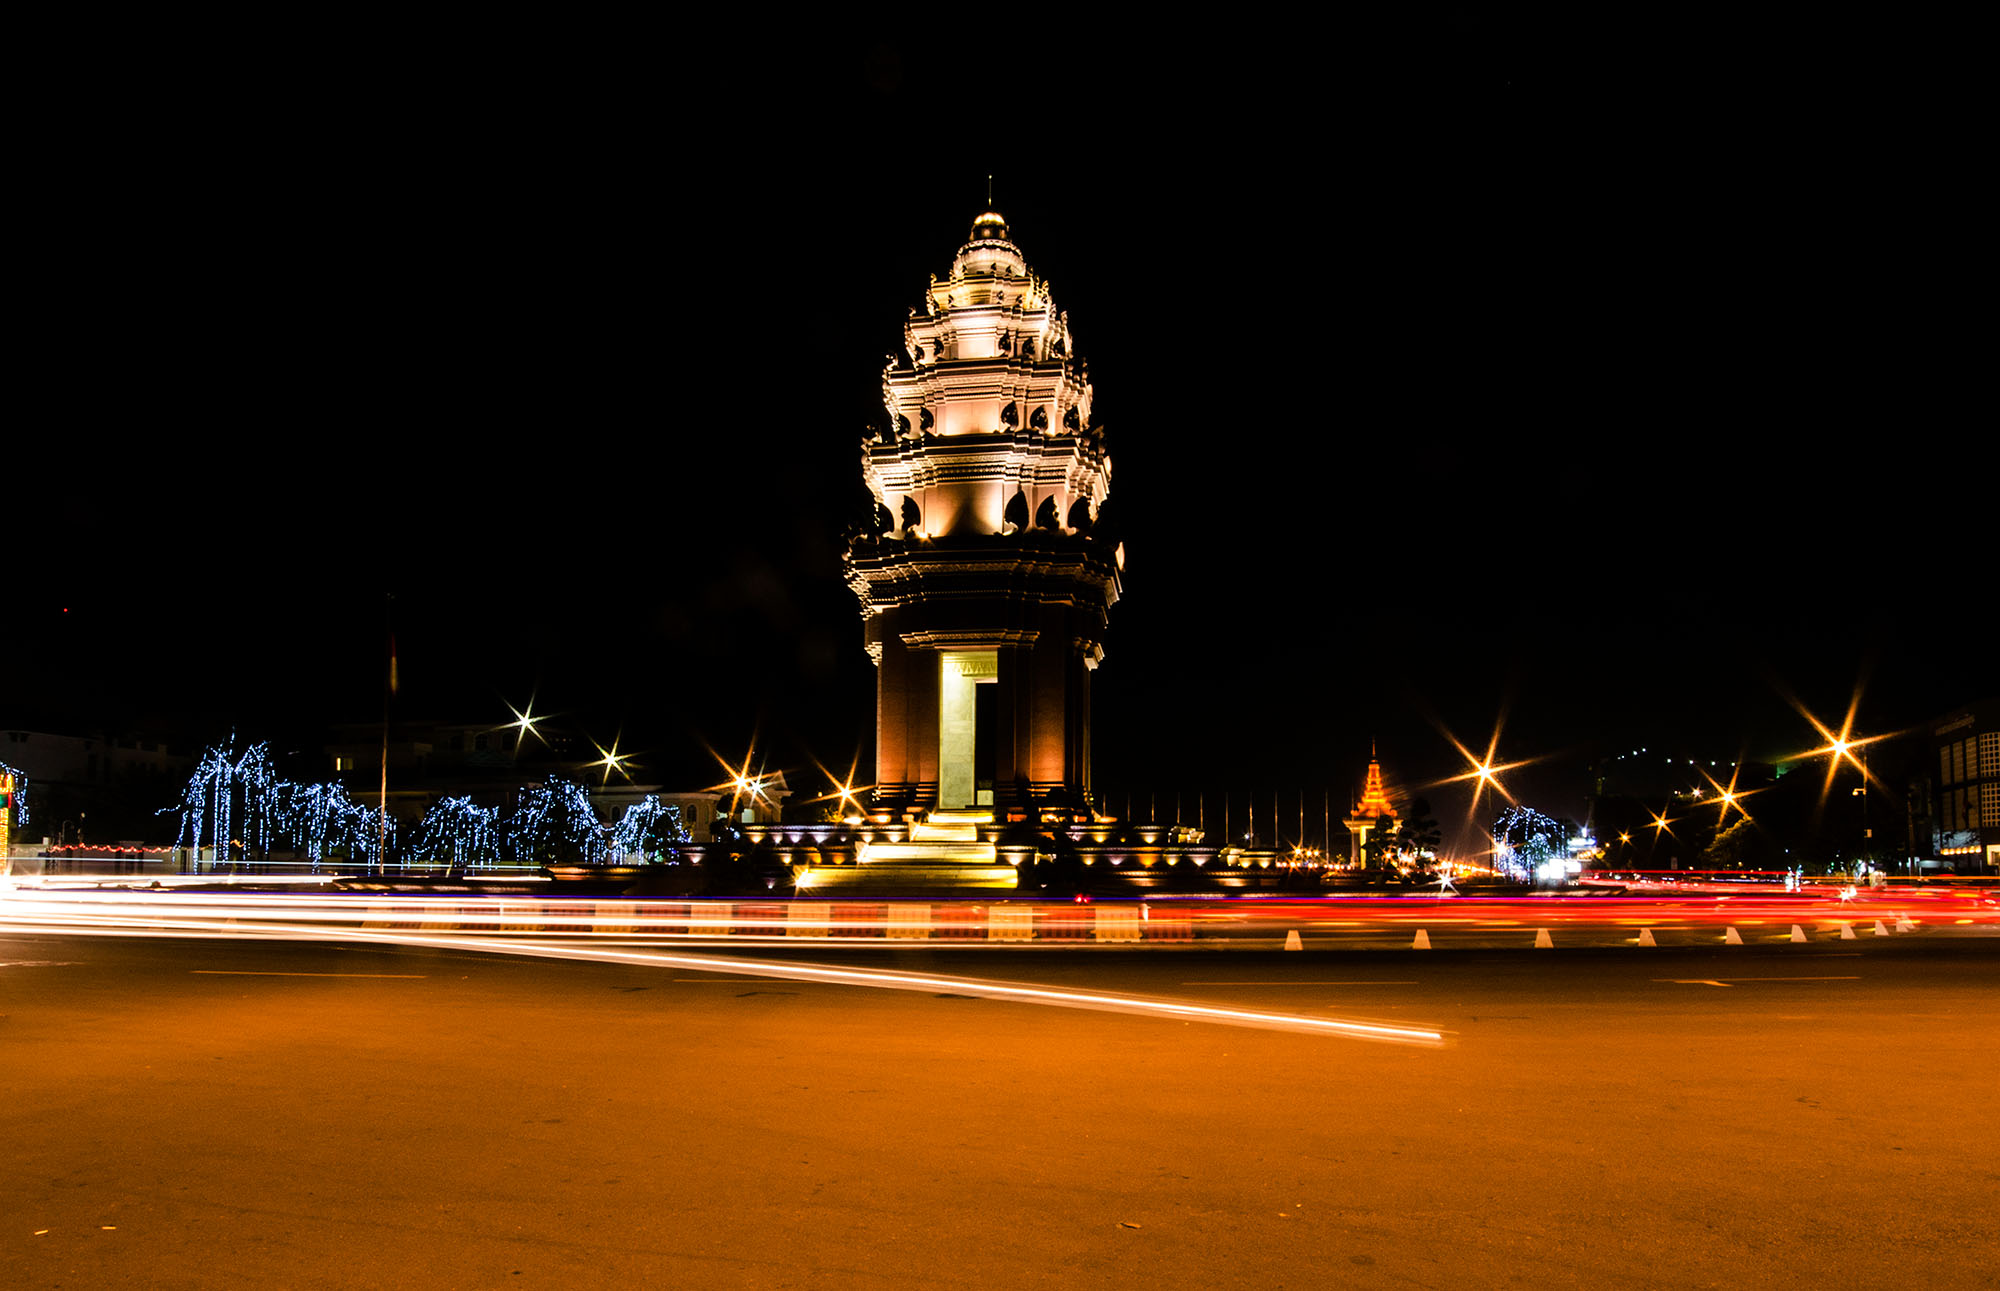 Cambodia Independence Monument - Phnom Penh Attraction